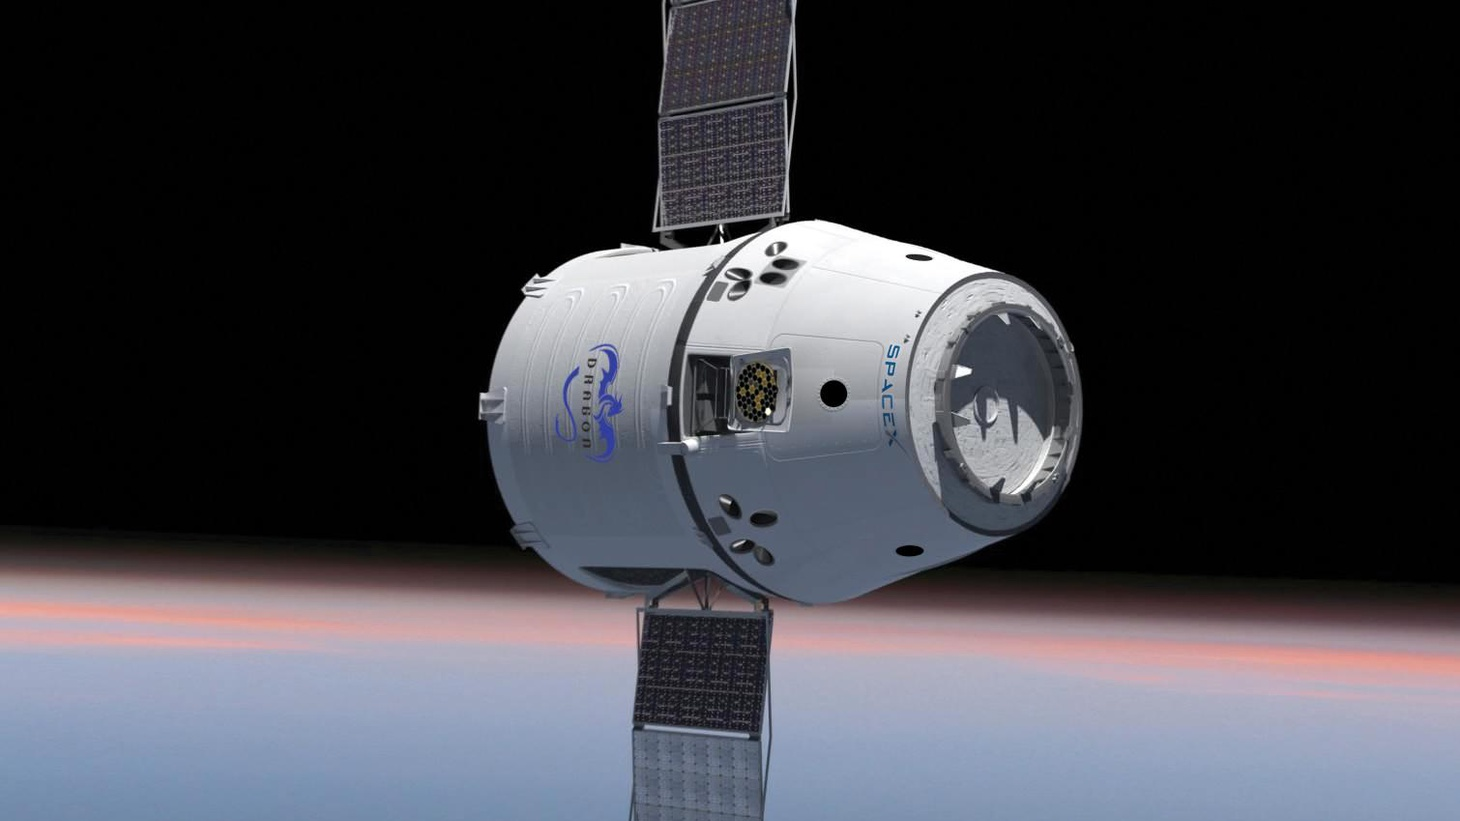 On Saturday, private company SpaceX is scheduled to launch a capsule to rendezvous with the International Space Station. We hear about the risks and potential benefits.